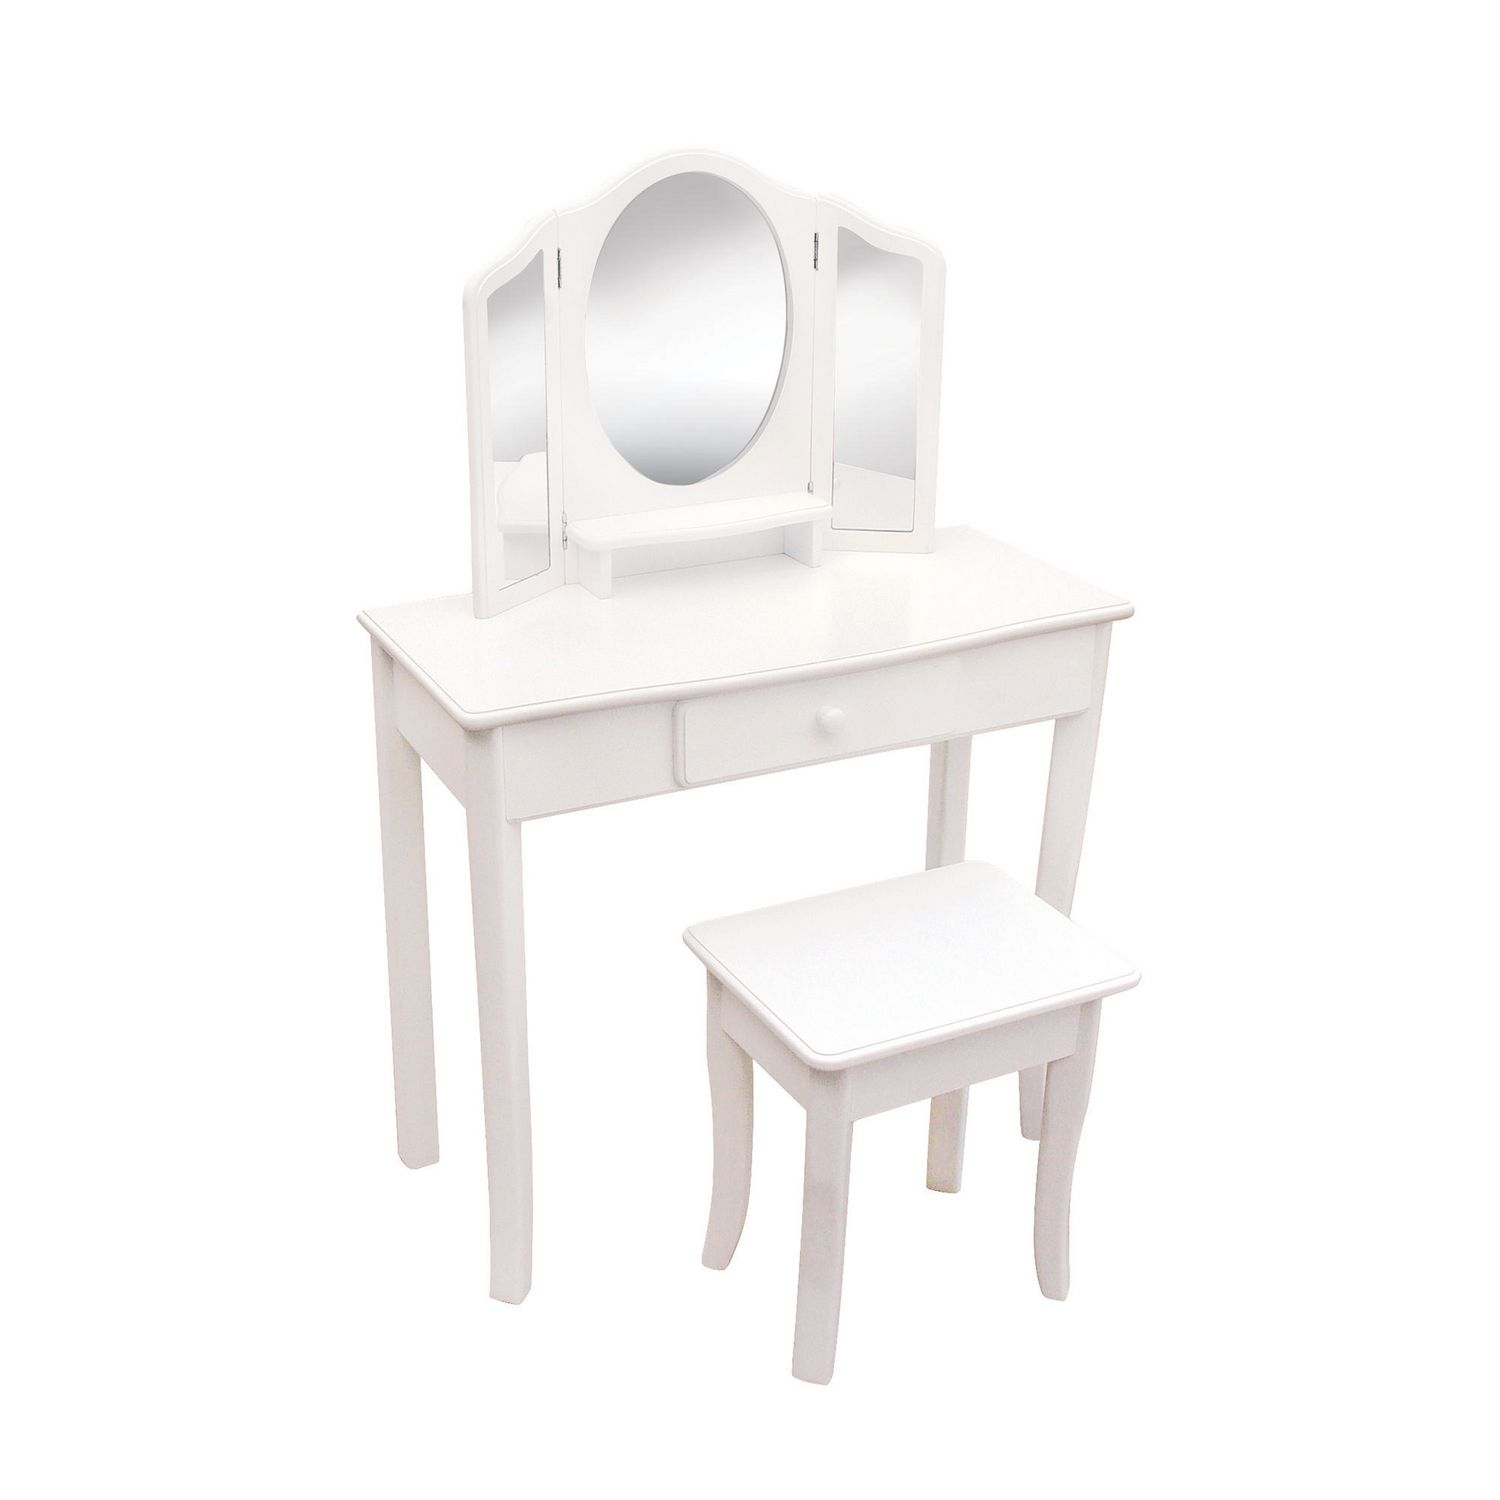 Guidecraft Classic Vanity And Stool White Walmart Canada